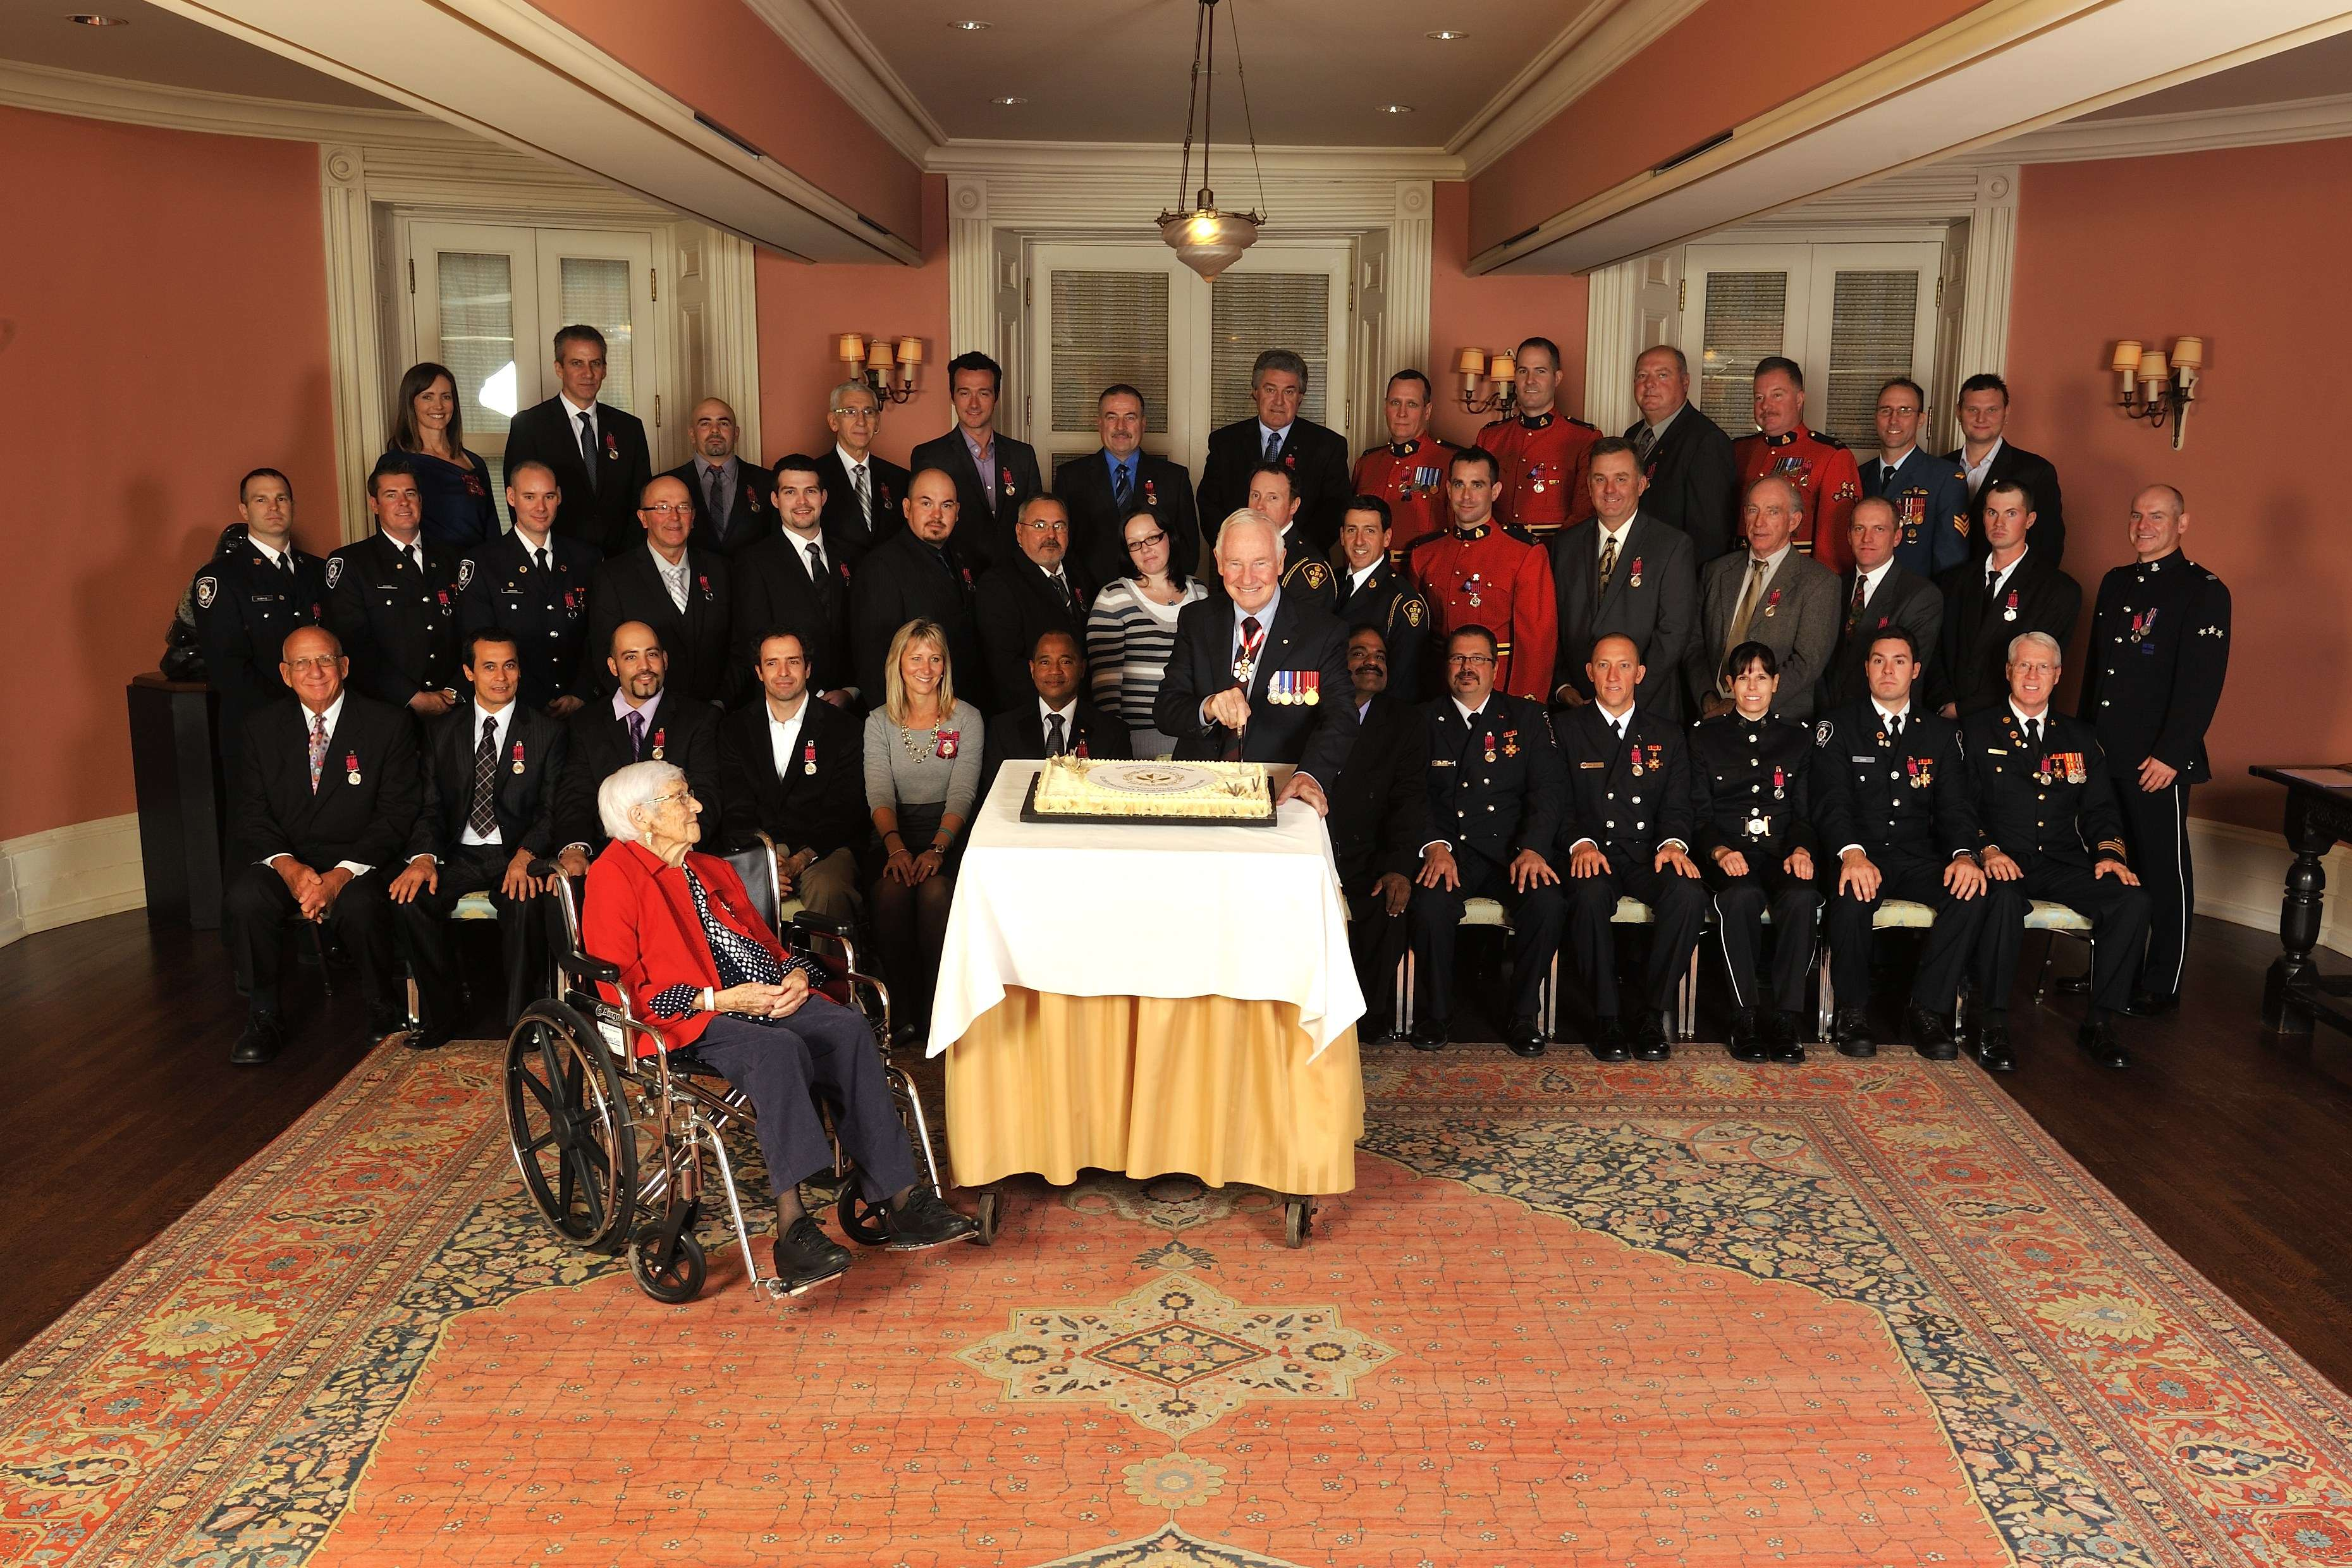 The Governor General was invited to cut a cake in honour of the 40th anniversary of the Decorations for Bravery. He is pictured with the recipients who were honoured during the ceremony.